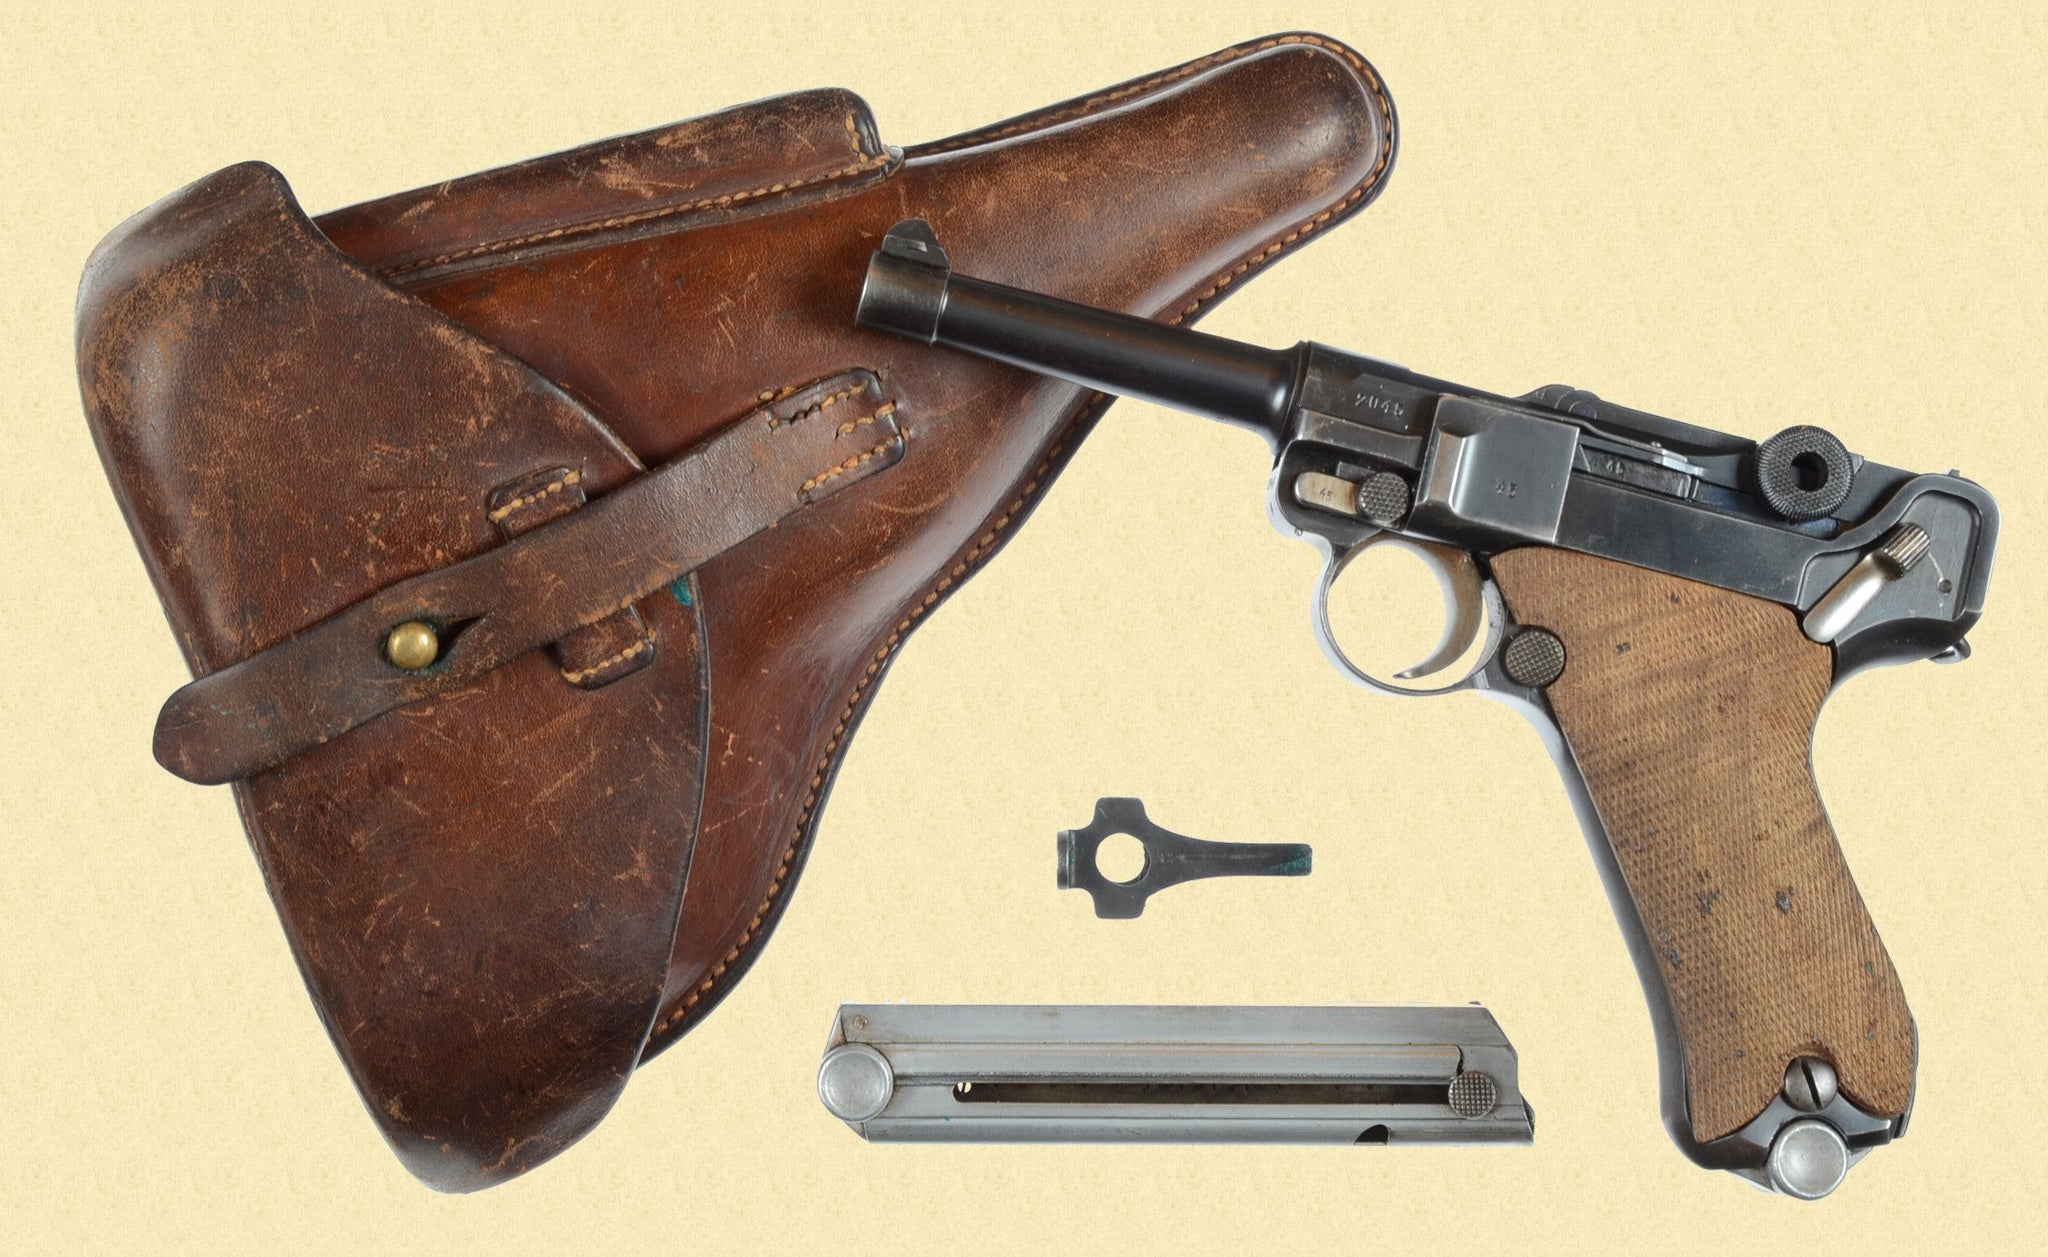 MAUSER S/42 G DATE POLICE